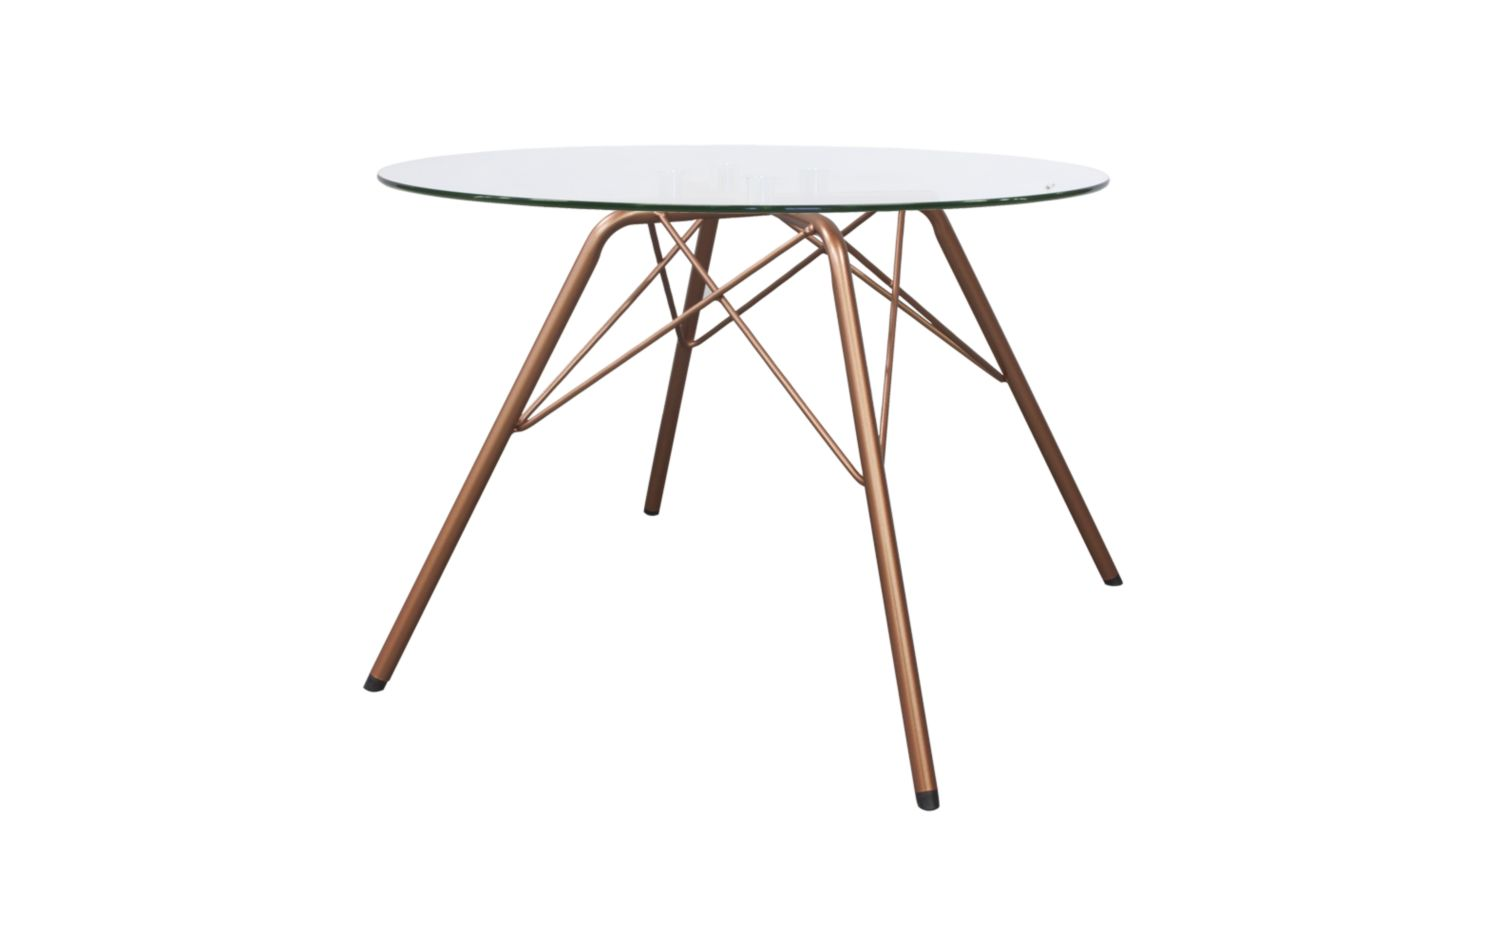 Home Sweet Home Personnalisez Votre Table Basse Chez Fly Plumetis Magazine - Tables De Salon Chez Fly